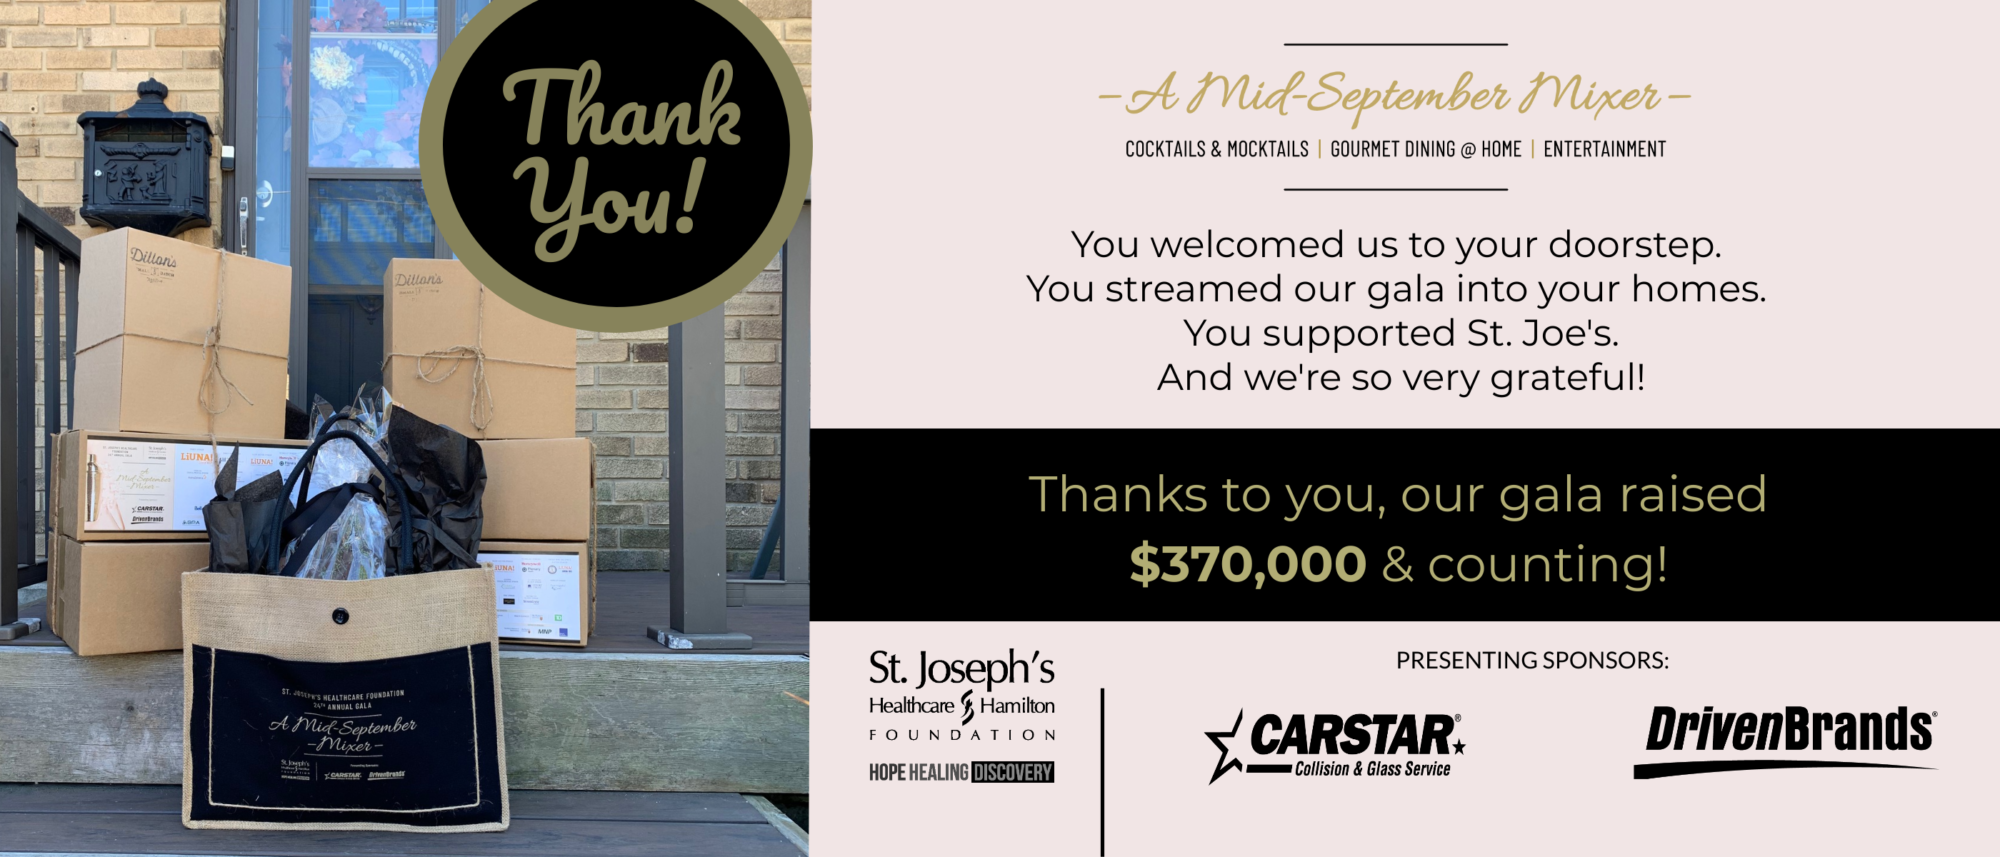 Our Gala Raises $370,000 to Support St. Joe's!